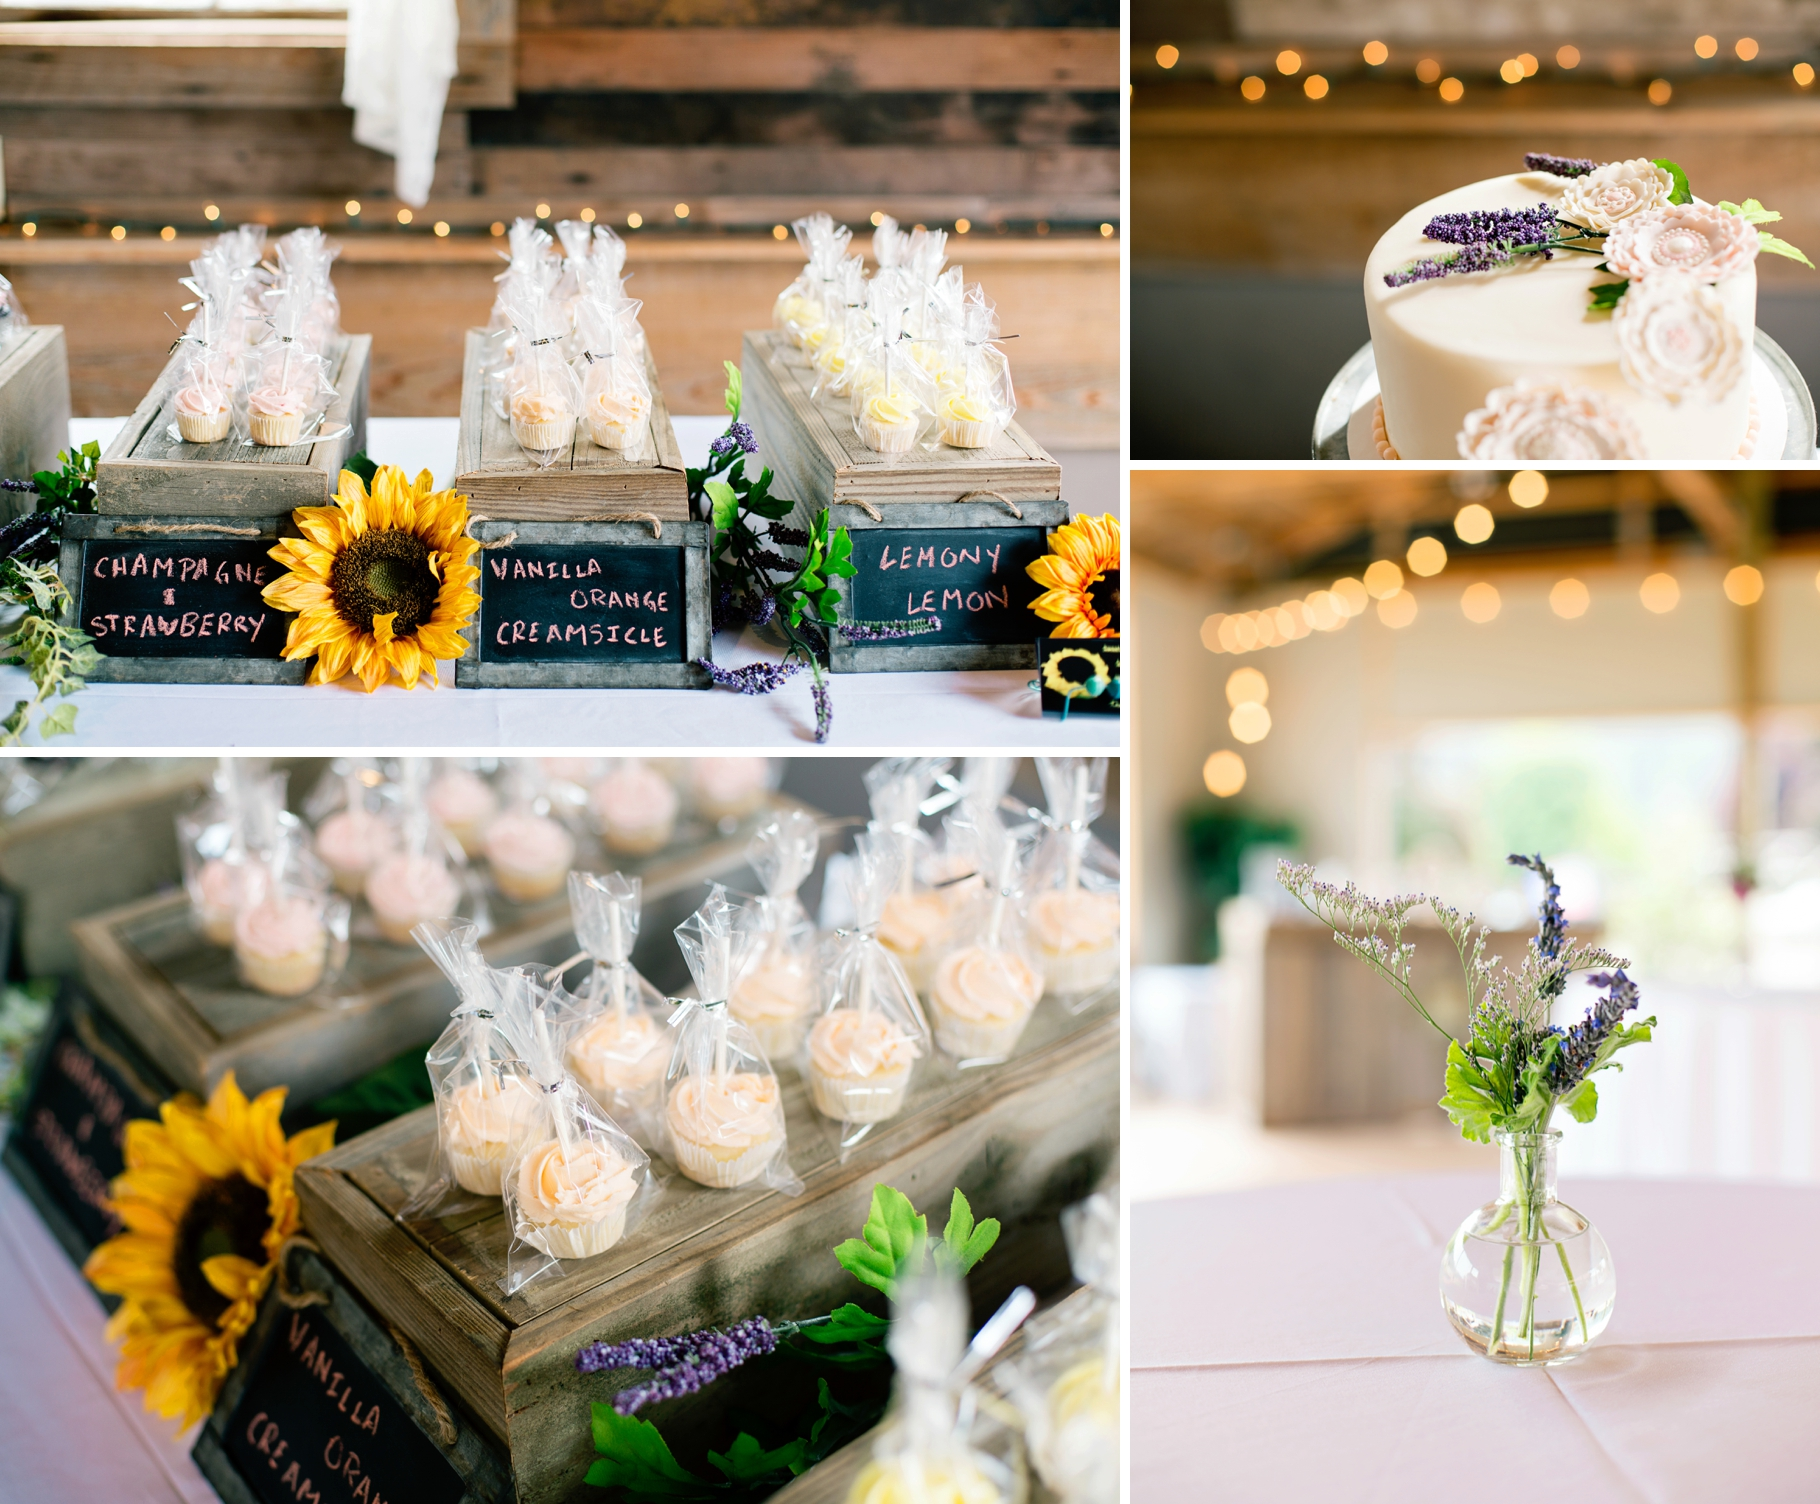 12-Craven-Farm-Sunshine-Sweets-Bakery-Mini-Cupcakes-Countryside-Snohomish-Wedding-Tour-Seattle-Photographer-Photography-by-Betty-Elaine